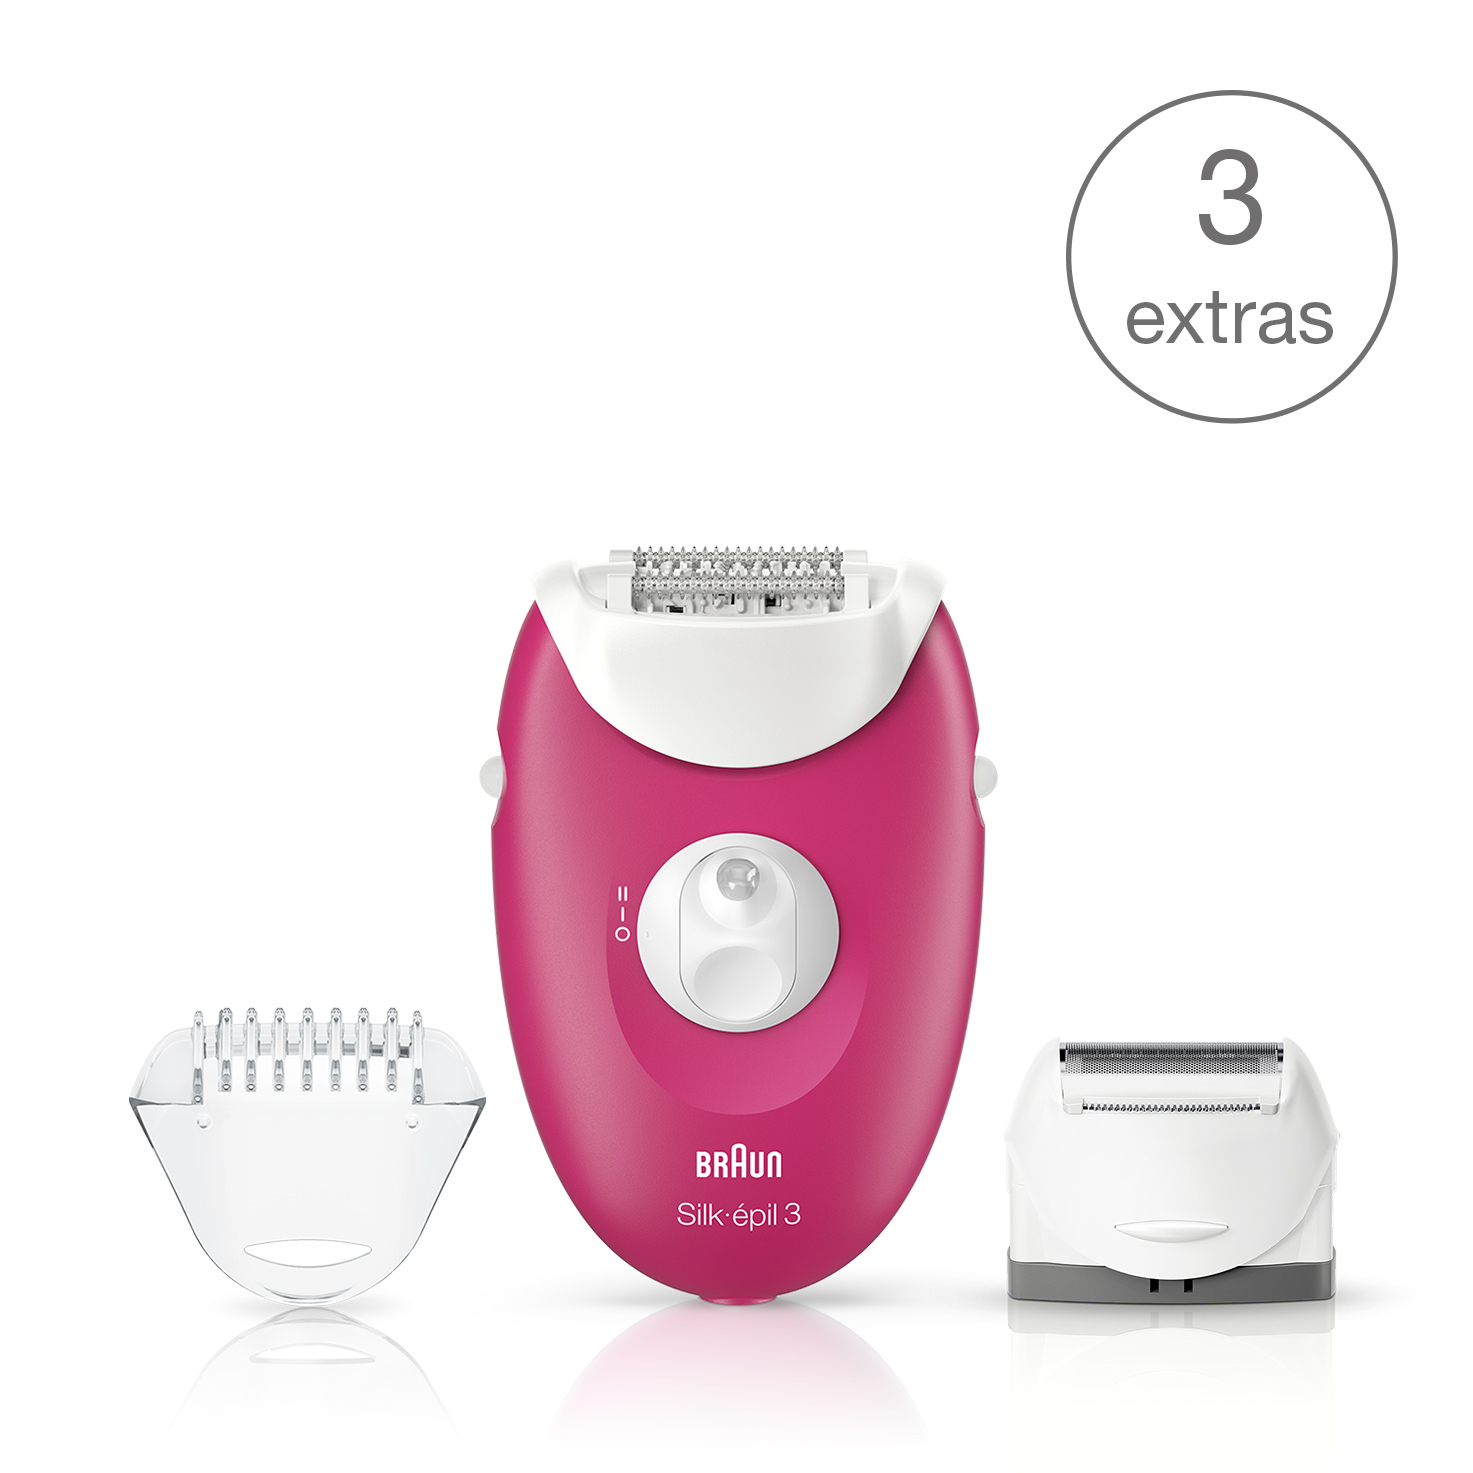 Silk-épil 3 3-410 epilator - What´s in the box